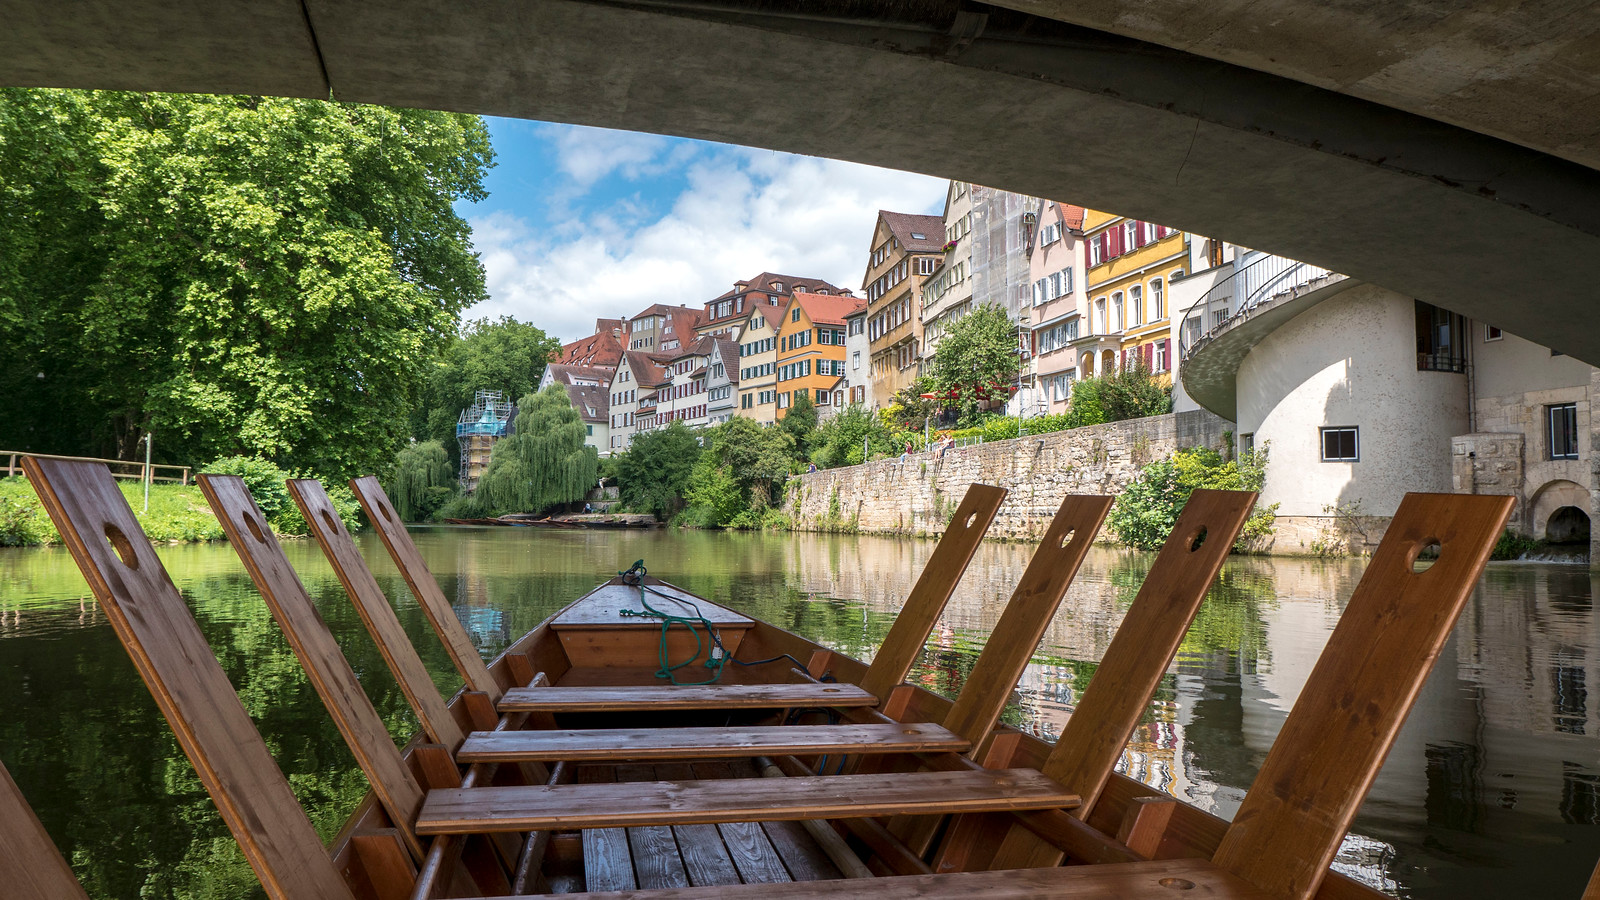 Punting trip on the Neckar River. Things to do in Tubingen Germany.